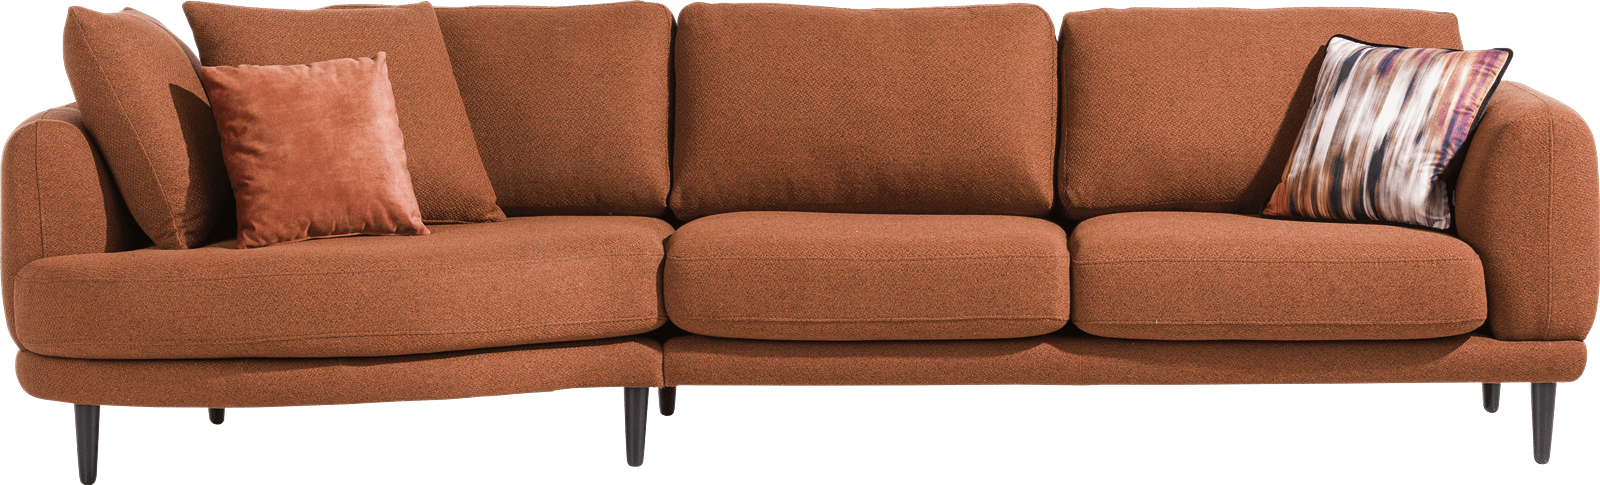 Henders & Hazel - Portland - Moderne - lounge end - small - 2 coussins big inclus - rond - gauche